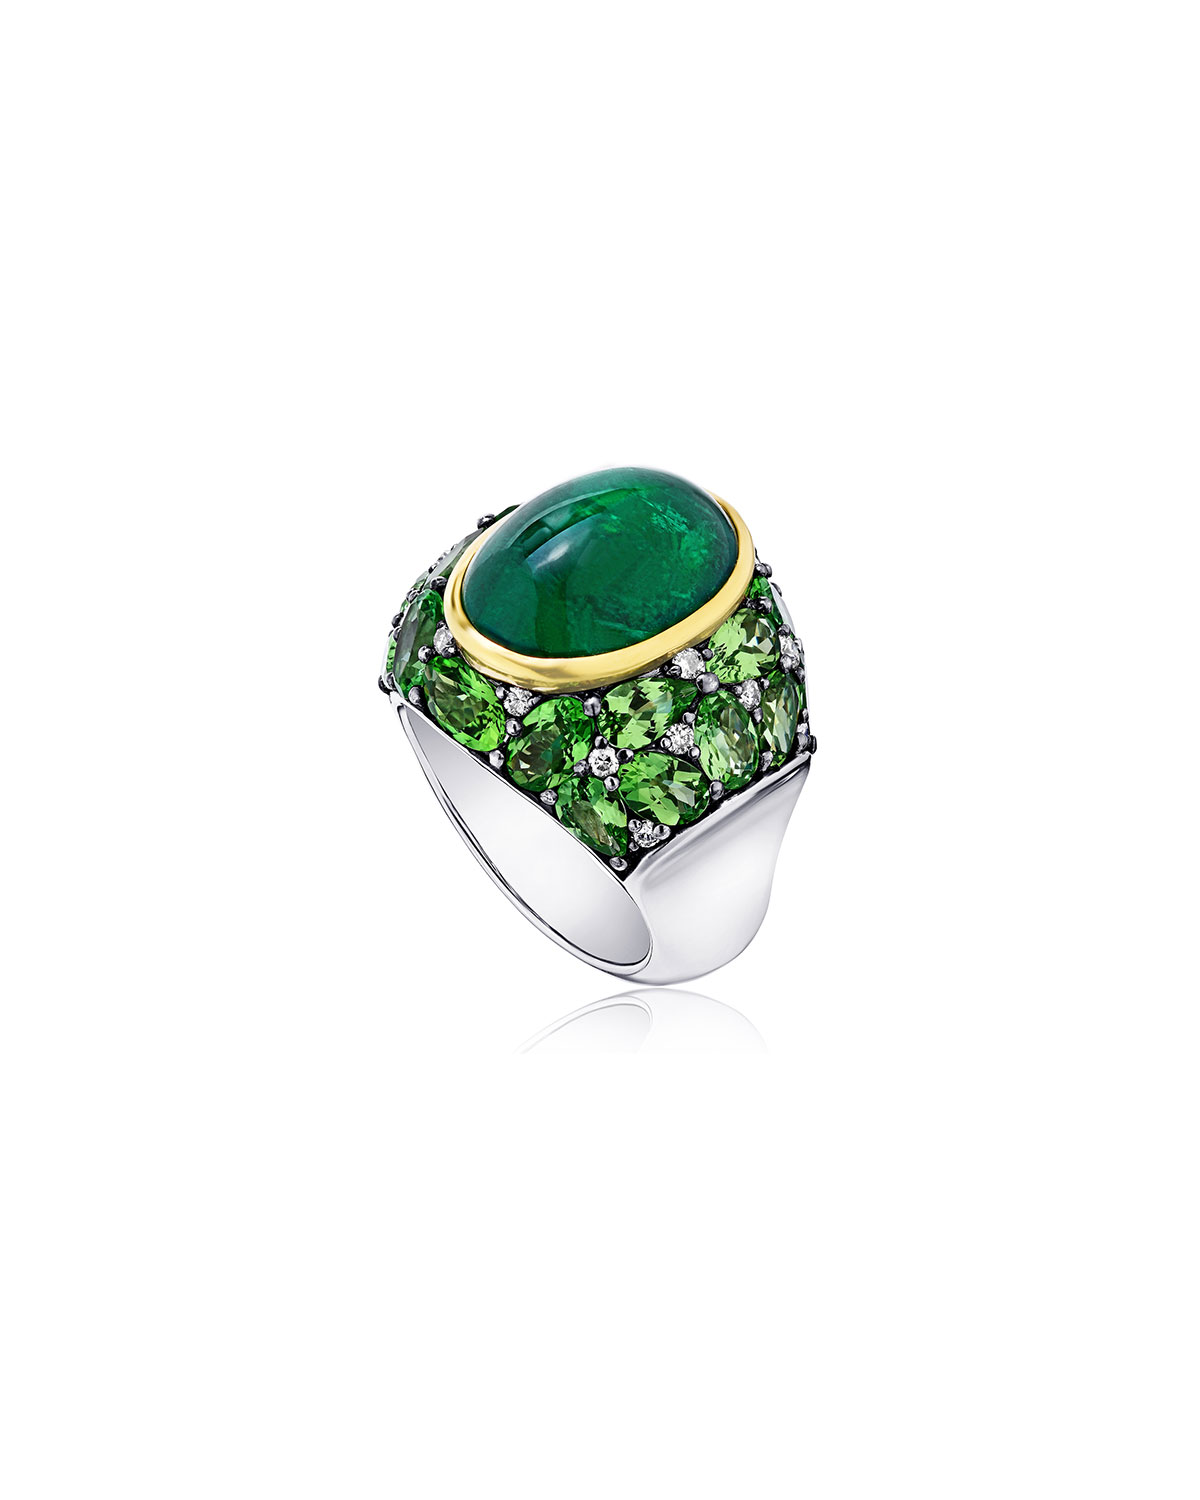 Emerald Oval Ring with Tsavorite and Diamonds